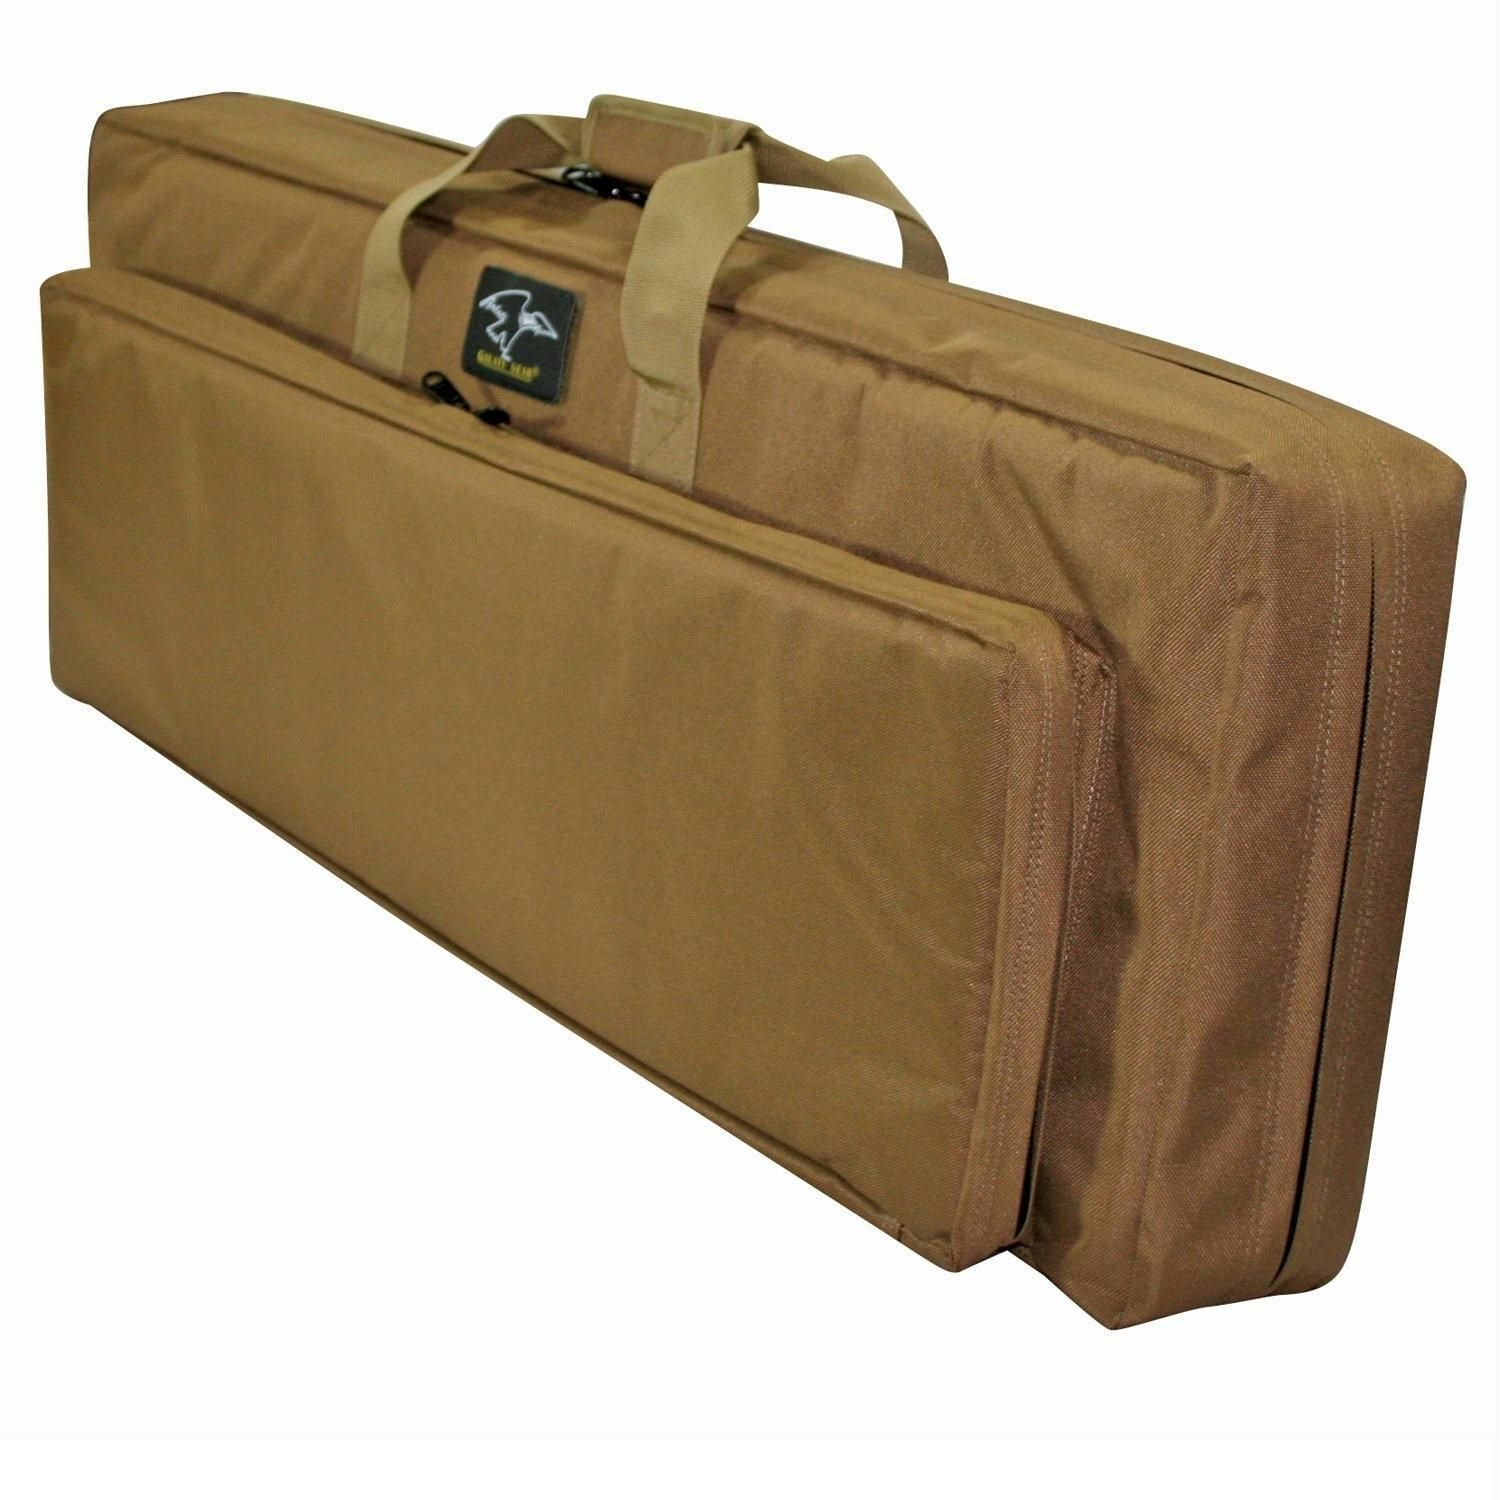 Galati Gear 38in Discreet Double Square Case - Coyote Brown ... 1ef1a6a3be645